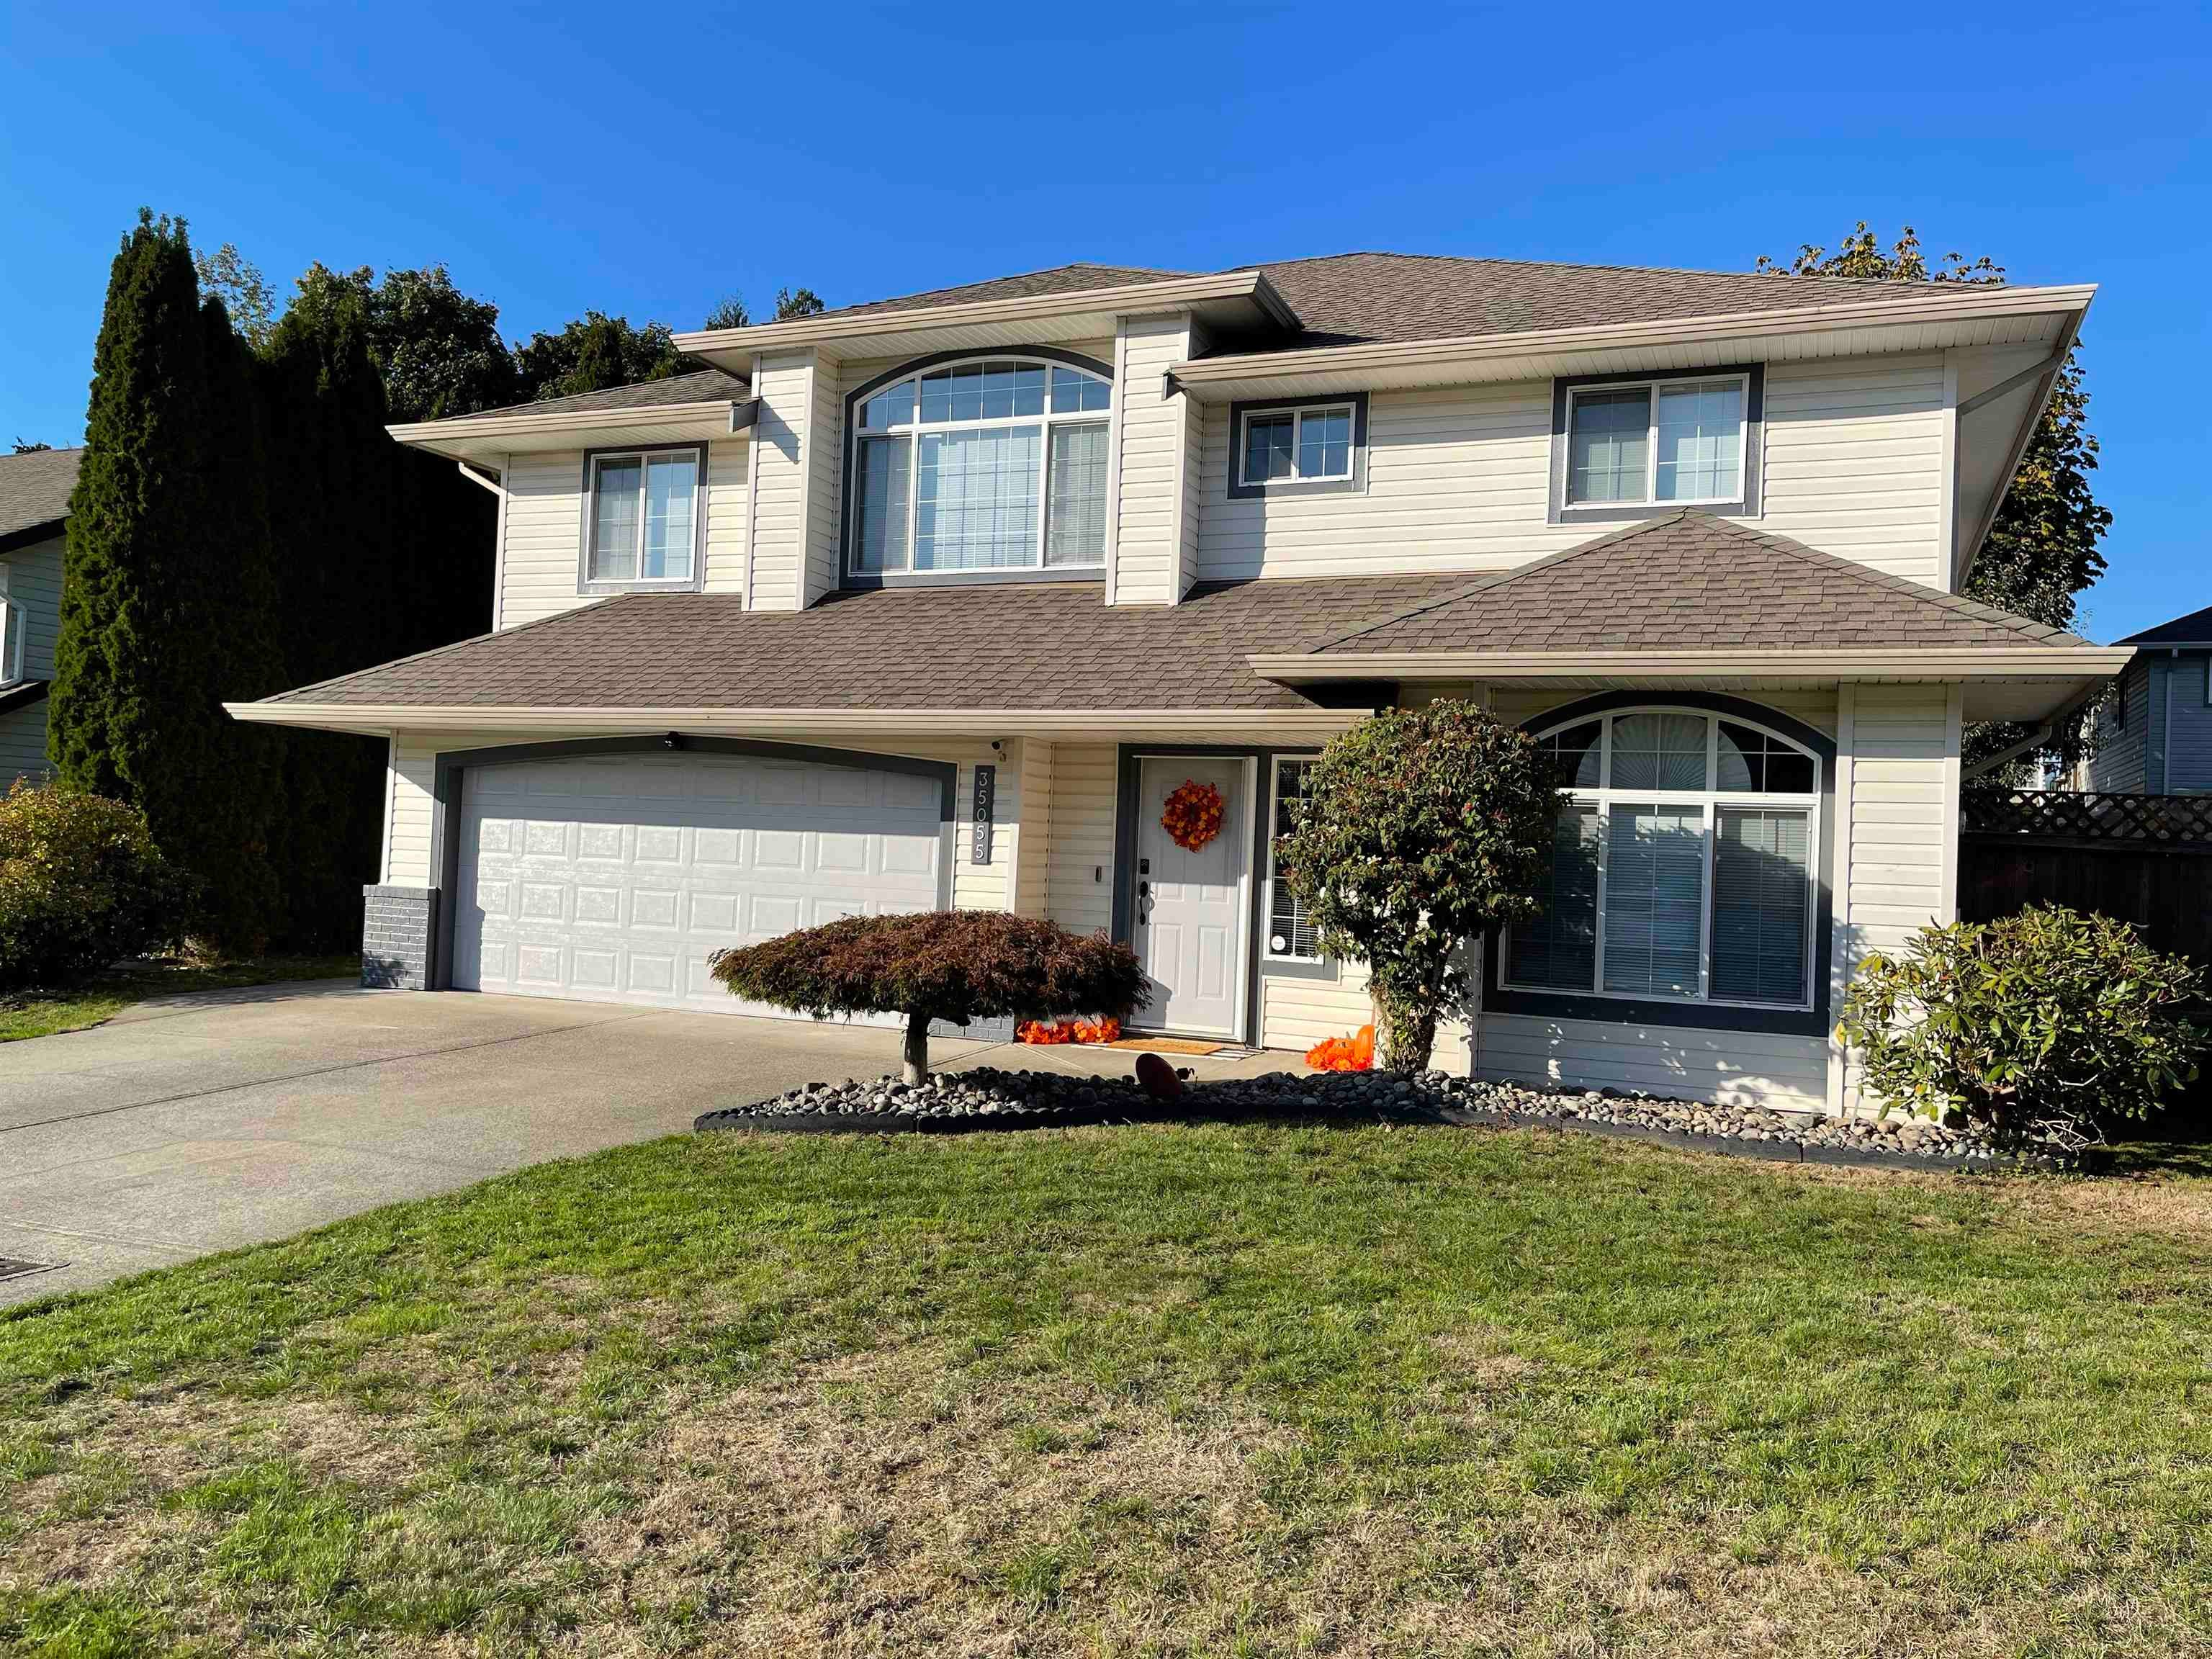 35055 KOOTENAY DRIVE - Abbotsford East House/Single Family for sale, 5 Bedrooms (R2625288) - #1